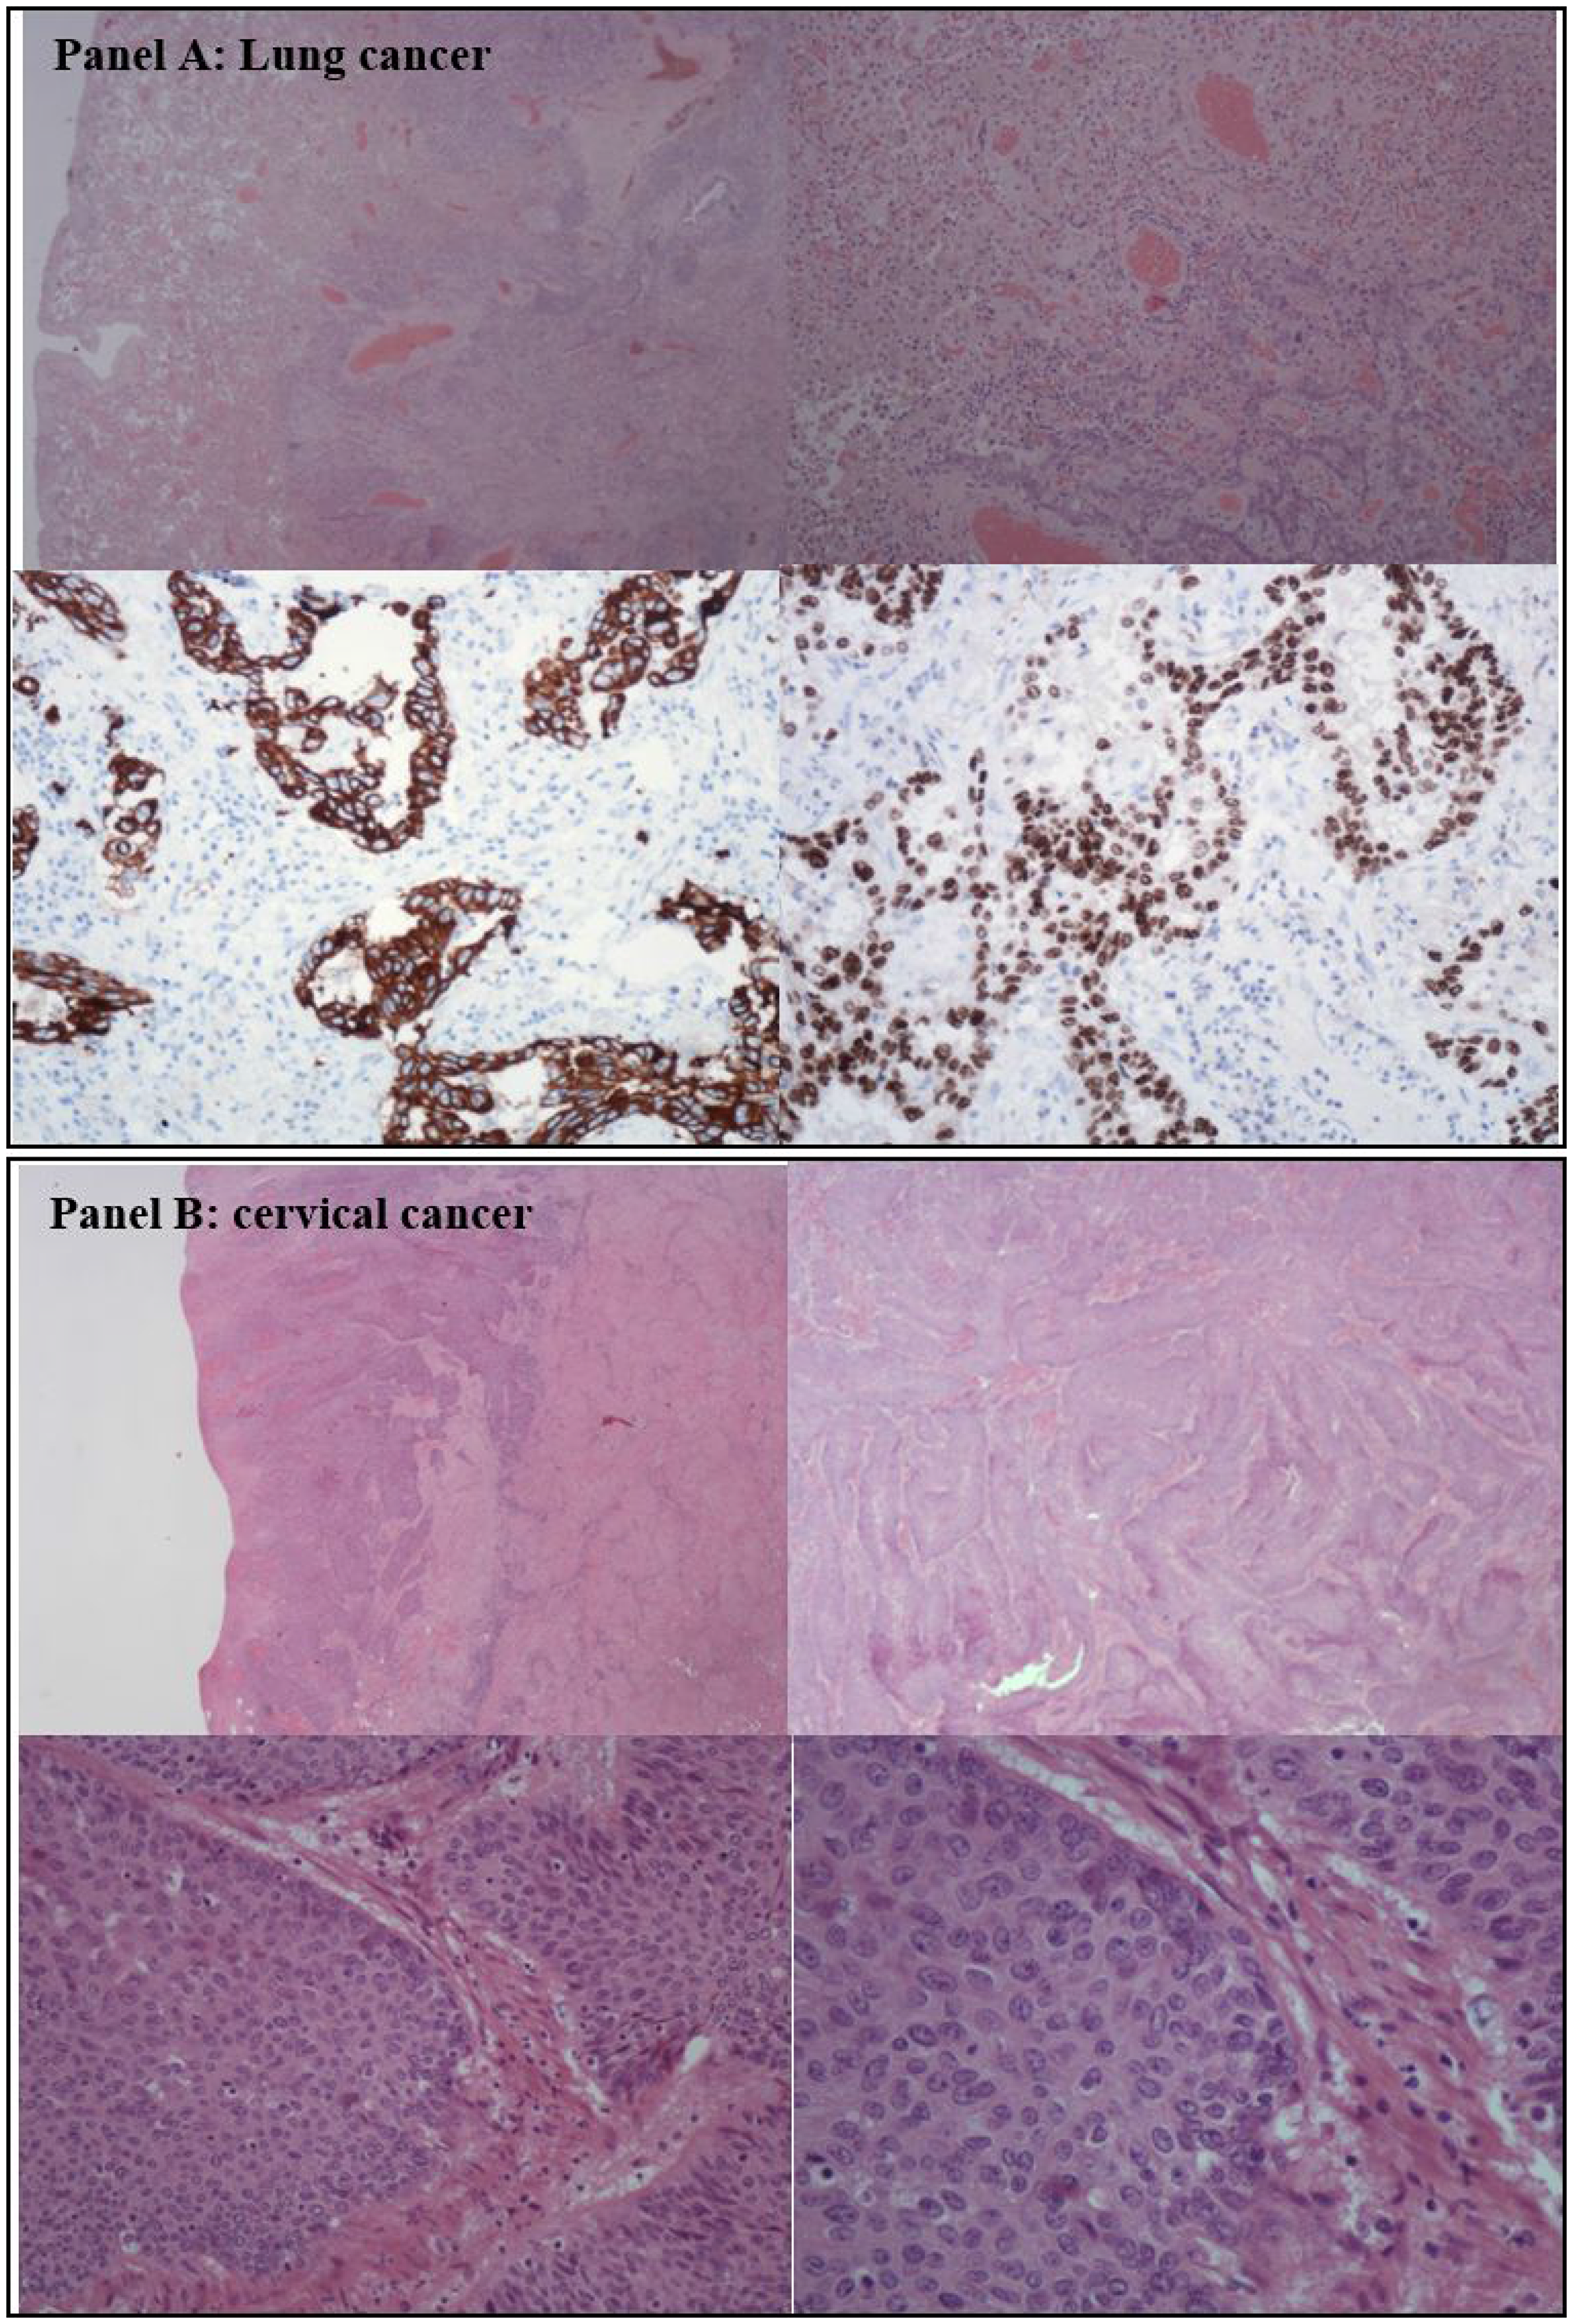 Histological analysis of the lung and cervical cancer.